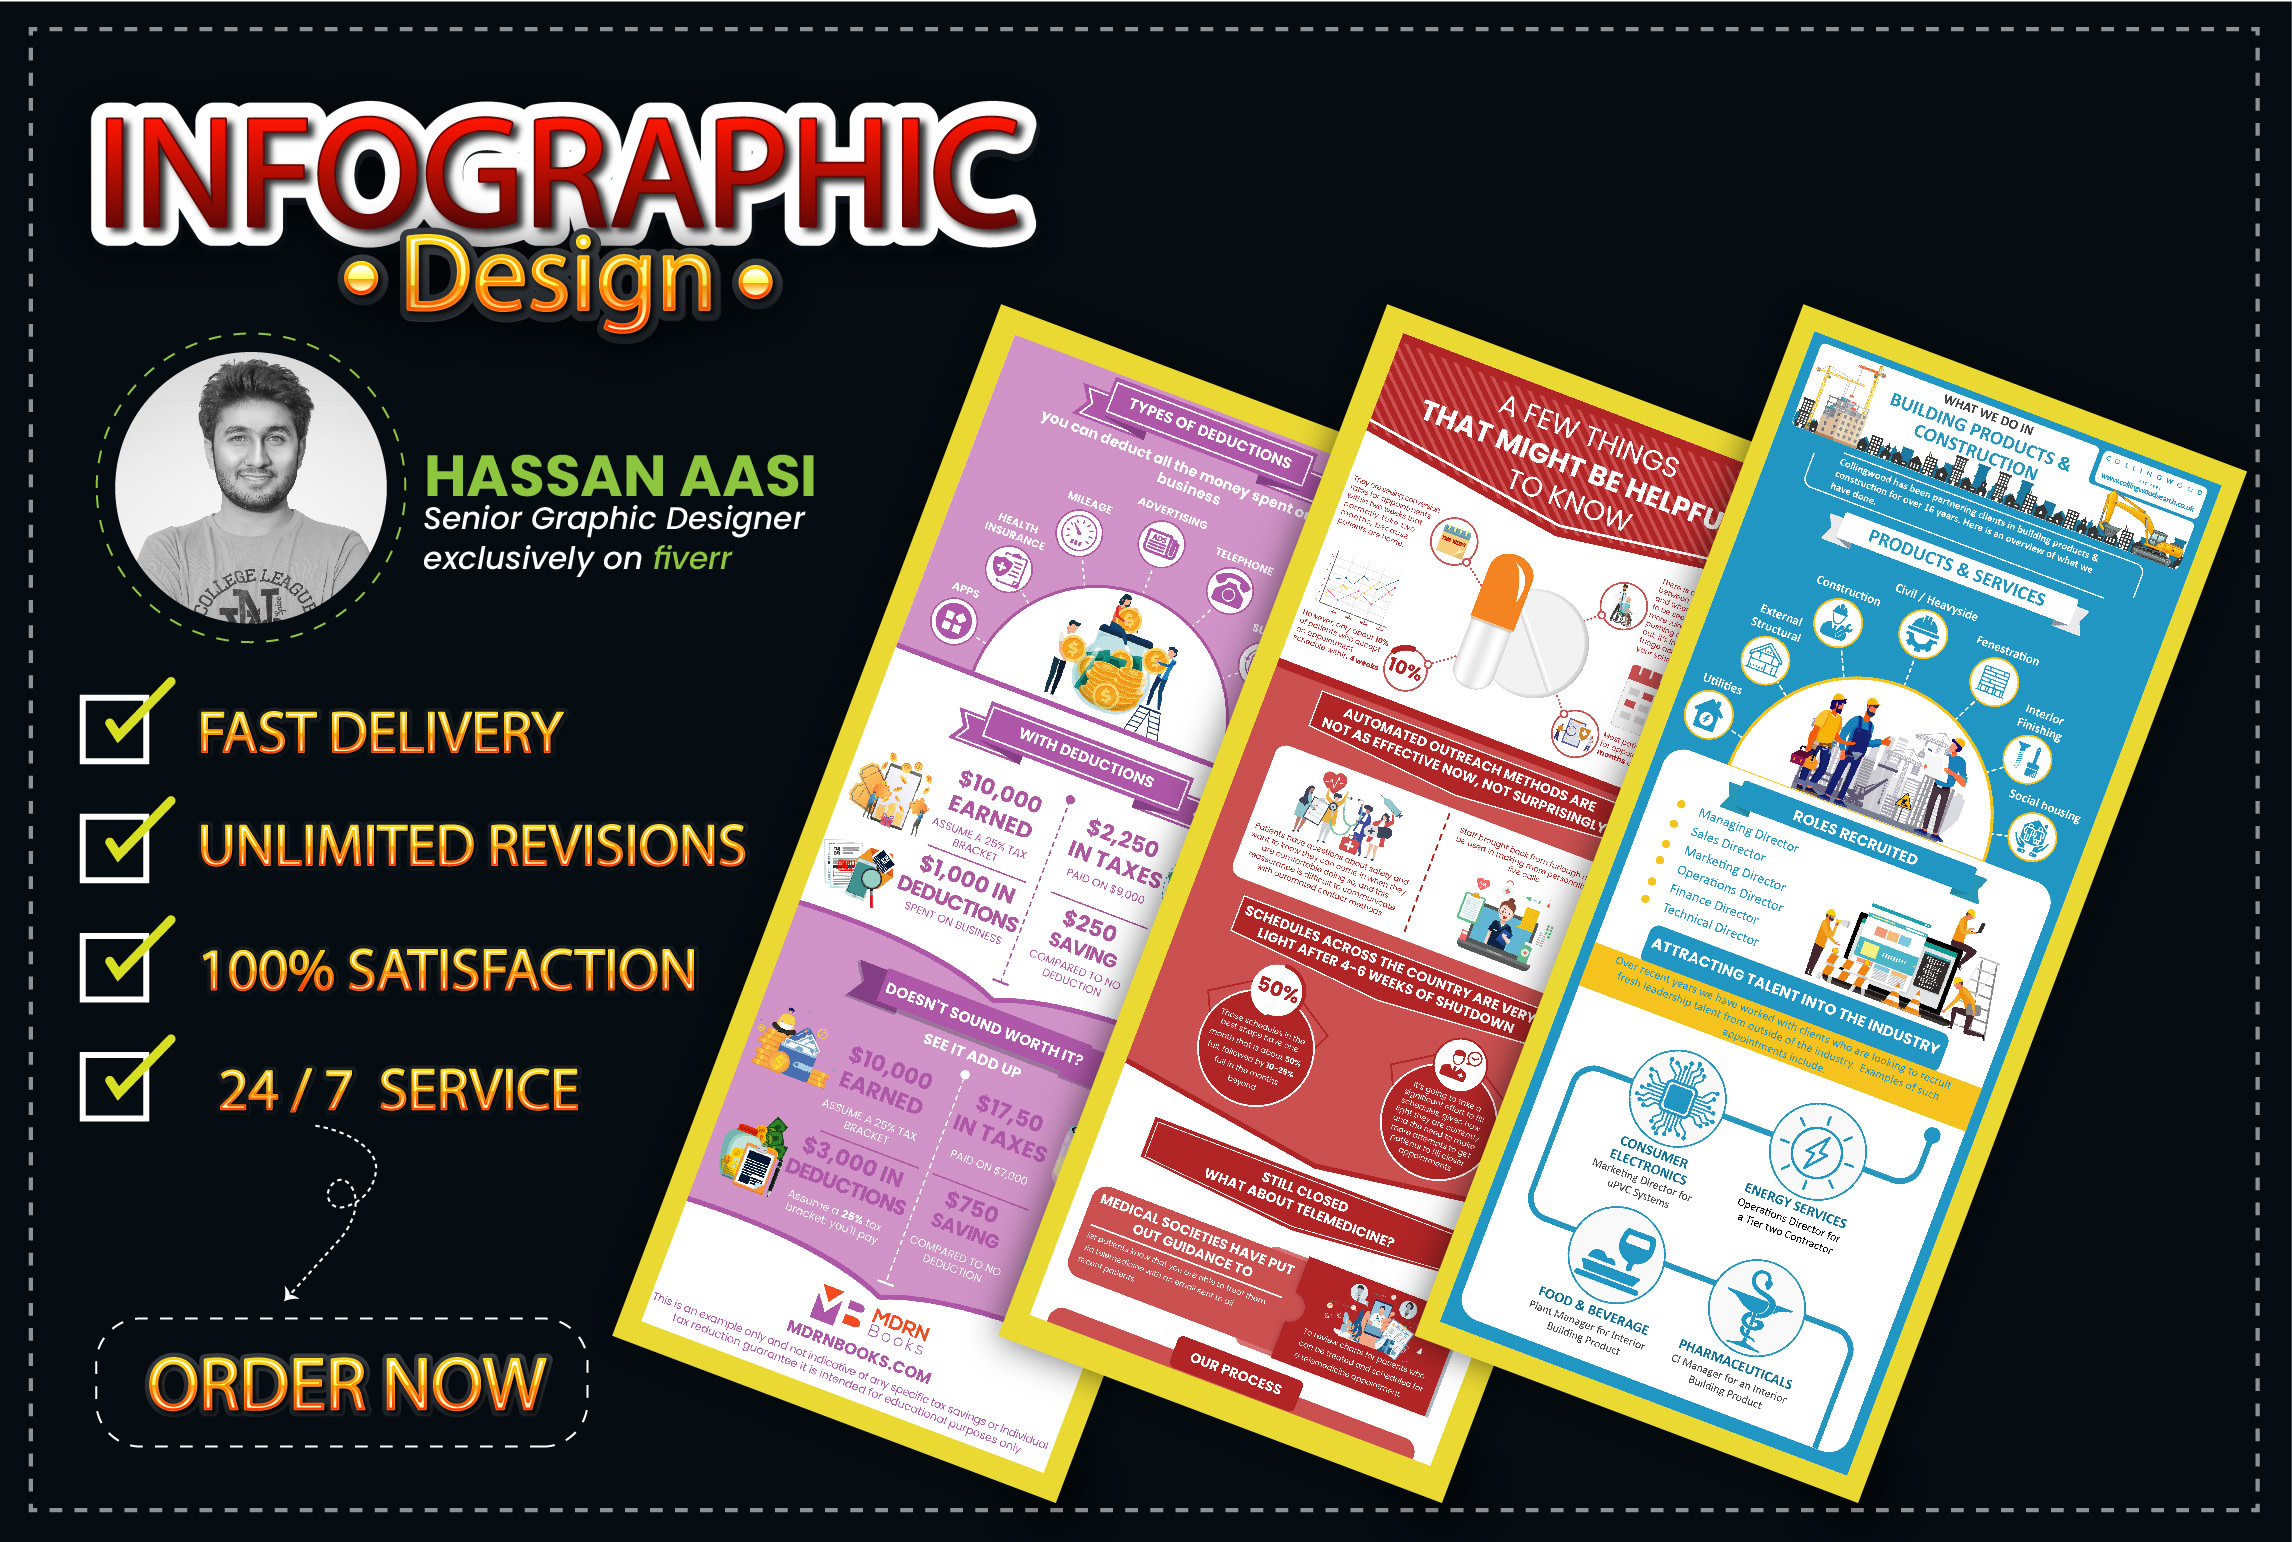 I will create infographic design or diagrams